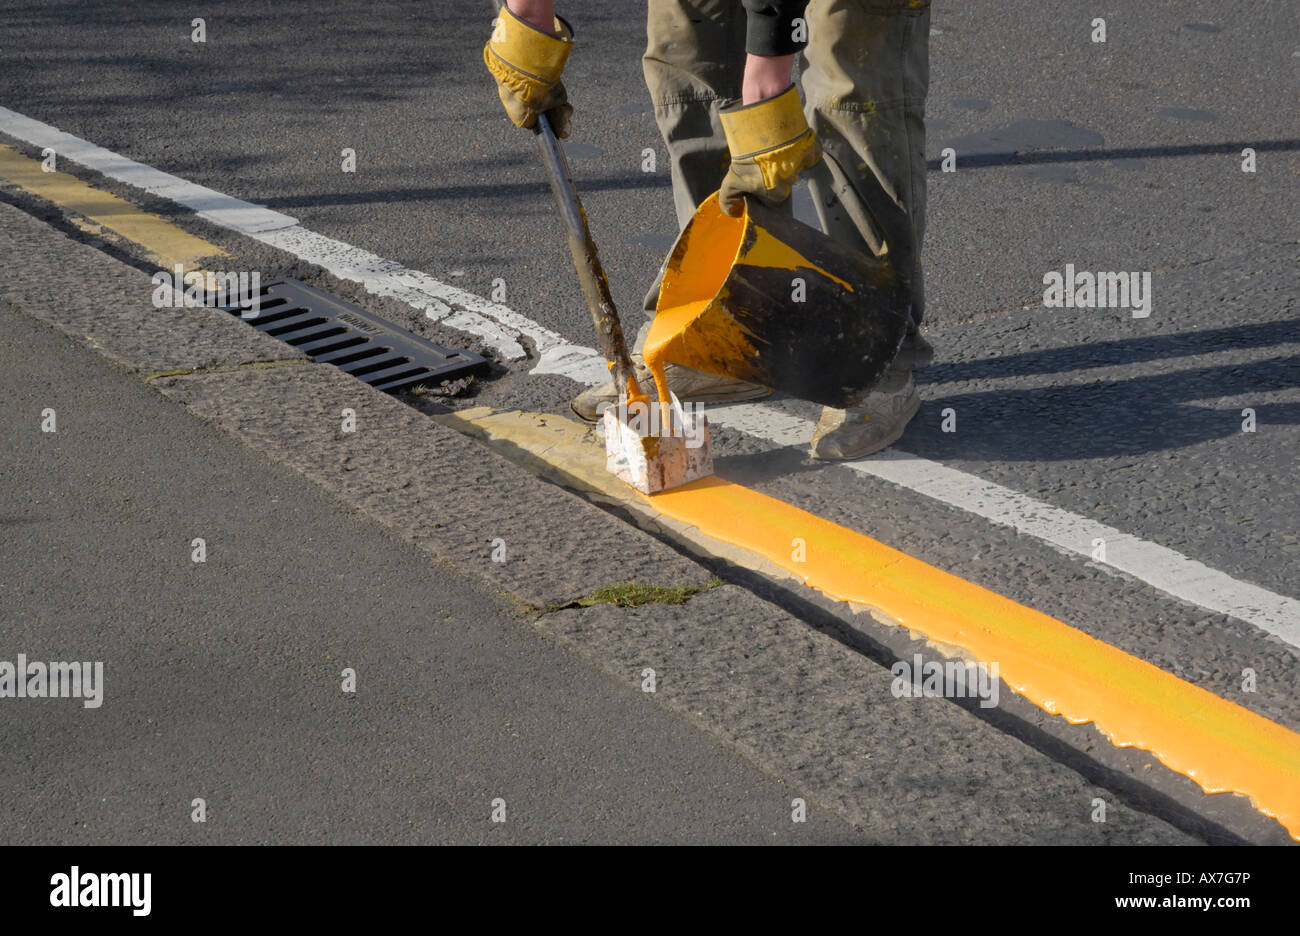 hand painting yellow line on road with kettle of hot paint